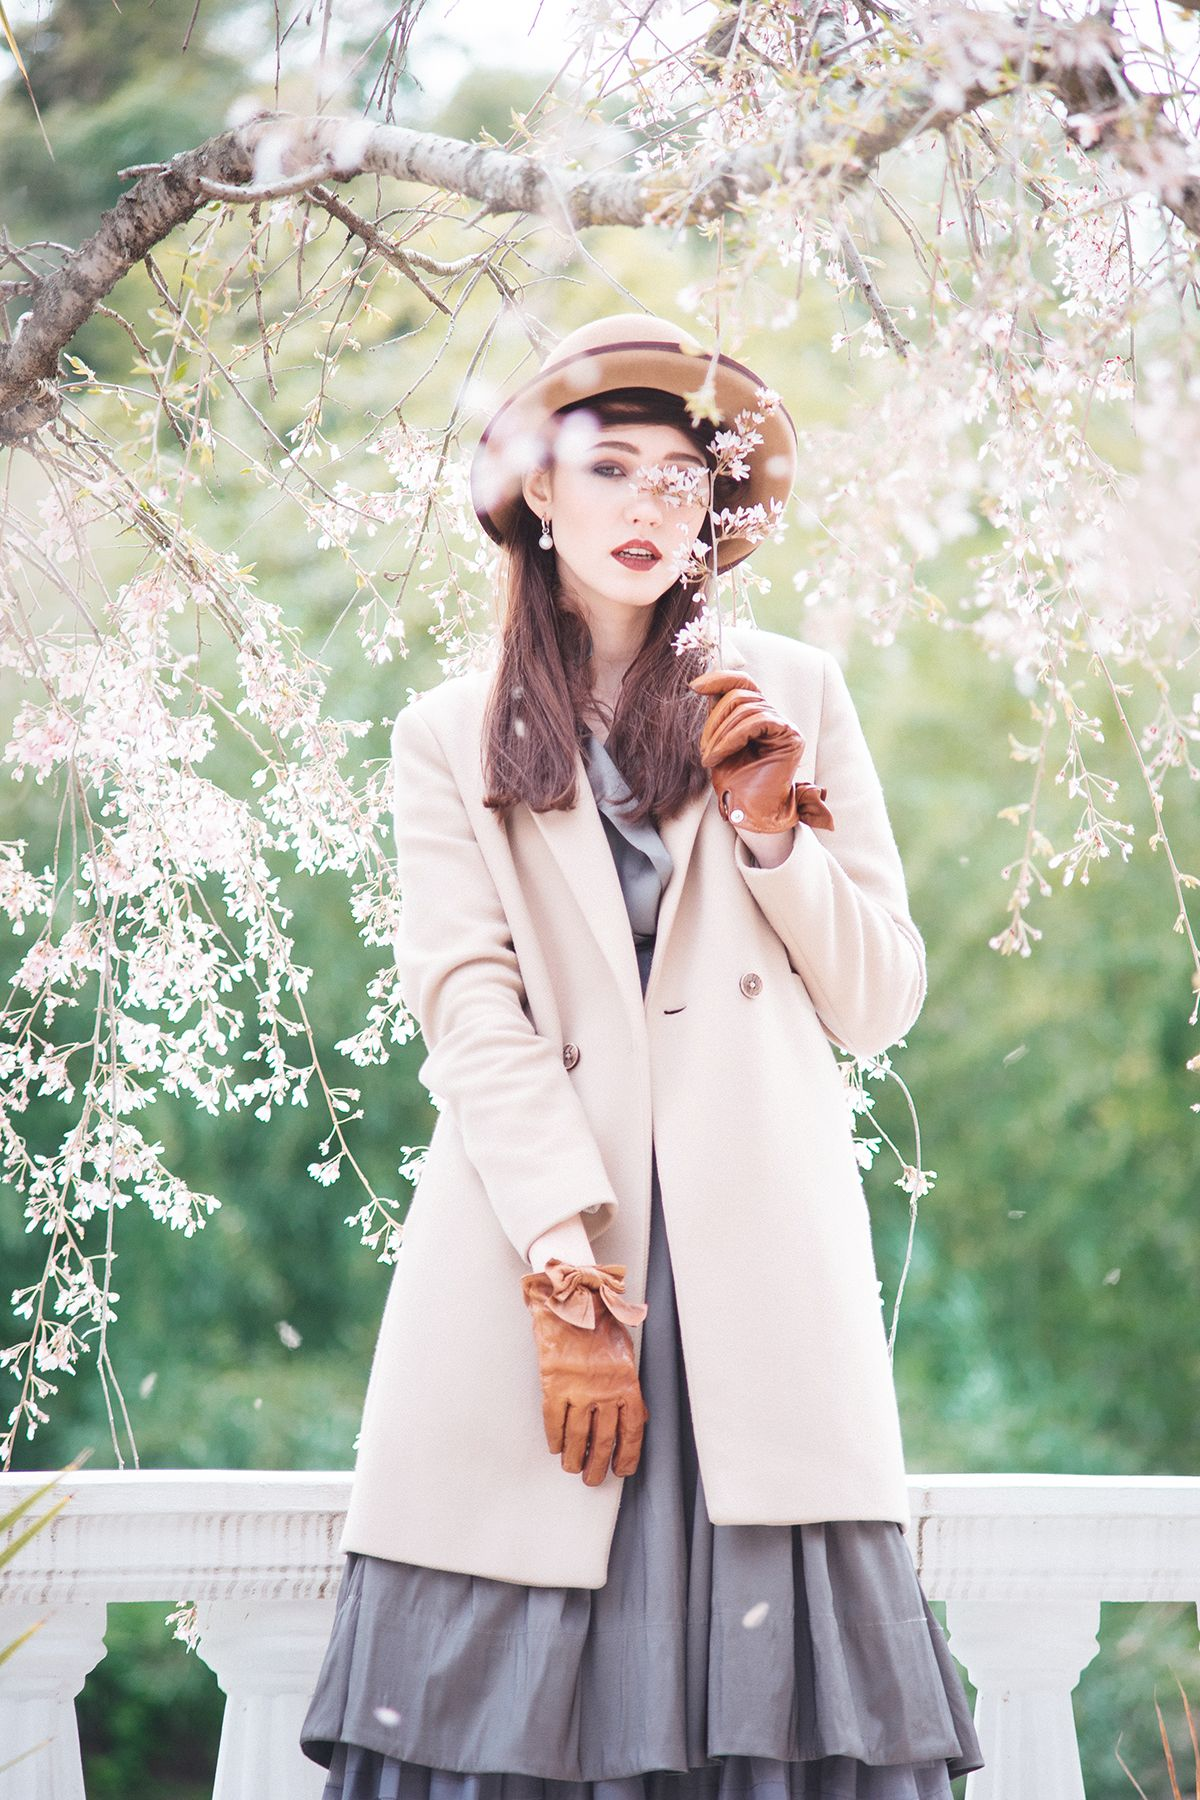 Spring portrait photosession. Vintage style, outfit. Flowers and beauty